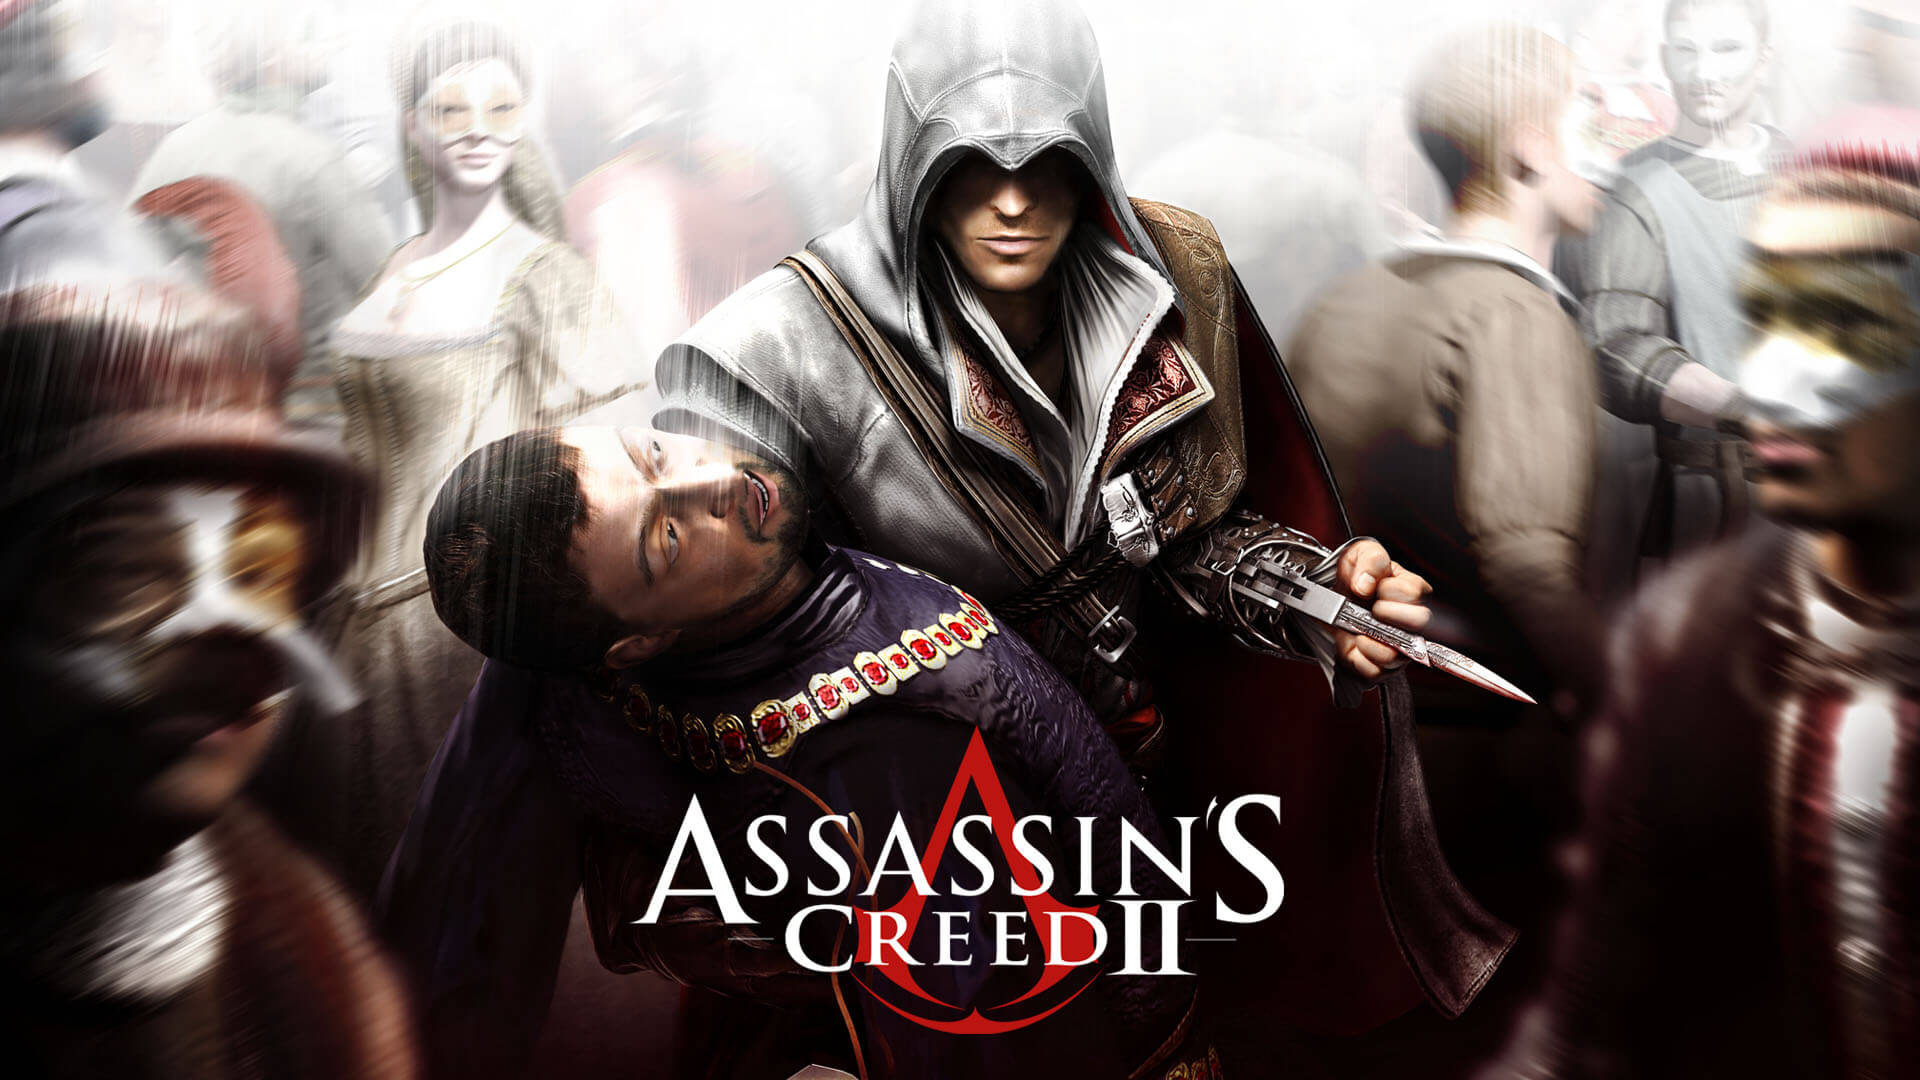 Assassin's Creed II Is Now Free For A Limited Time